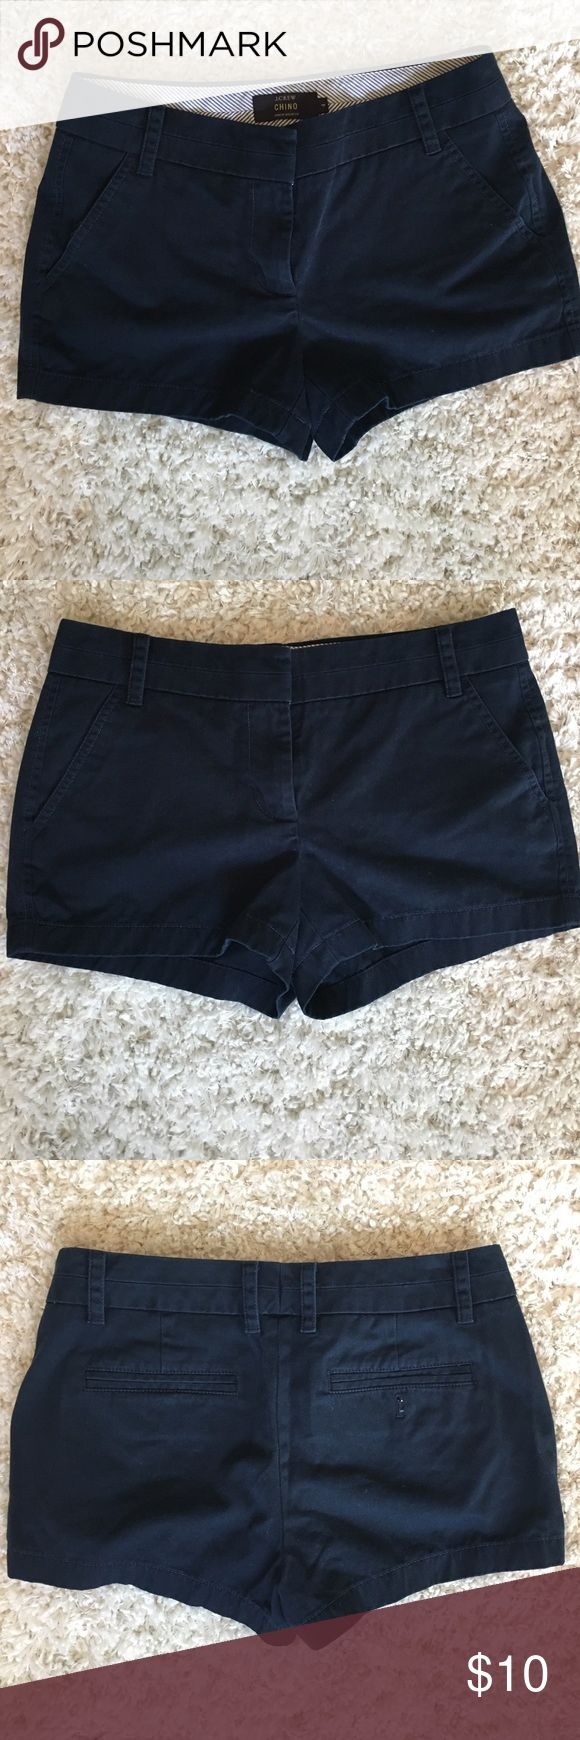 J. Crew navy blue chino shorts J. Crew navy blue chino shorts in size 4. J. Crew Shorts